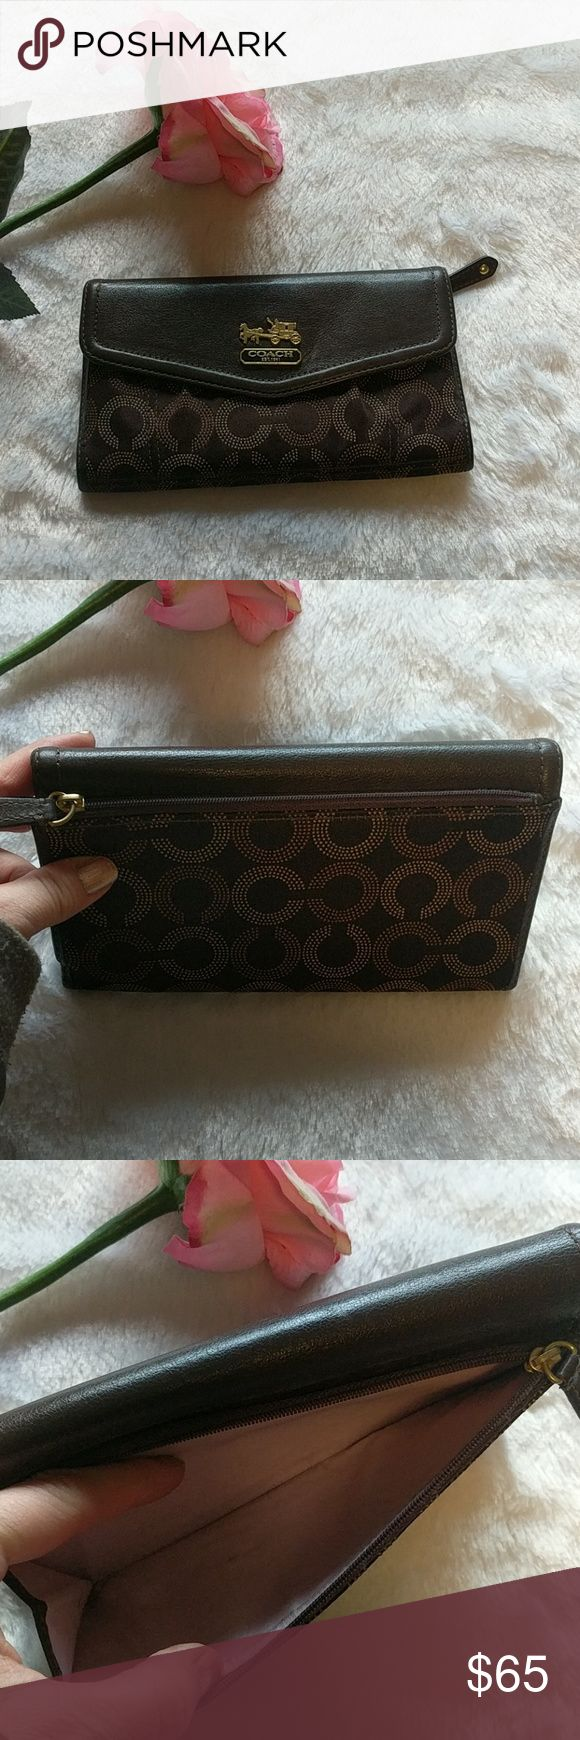 🎃Coach wallet🎃 In guc cute aunthentic Coach wallet, has several slots for your credit cards, cash, slot for change in back. ID, etc. Bundle & save! Coach Bags Wallets